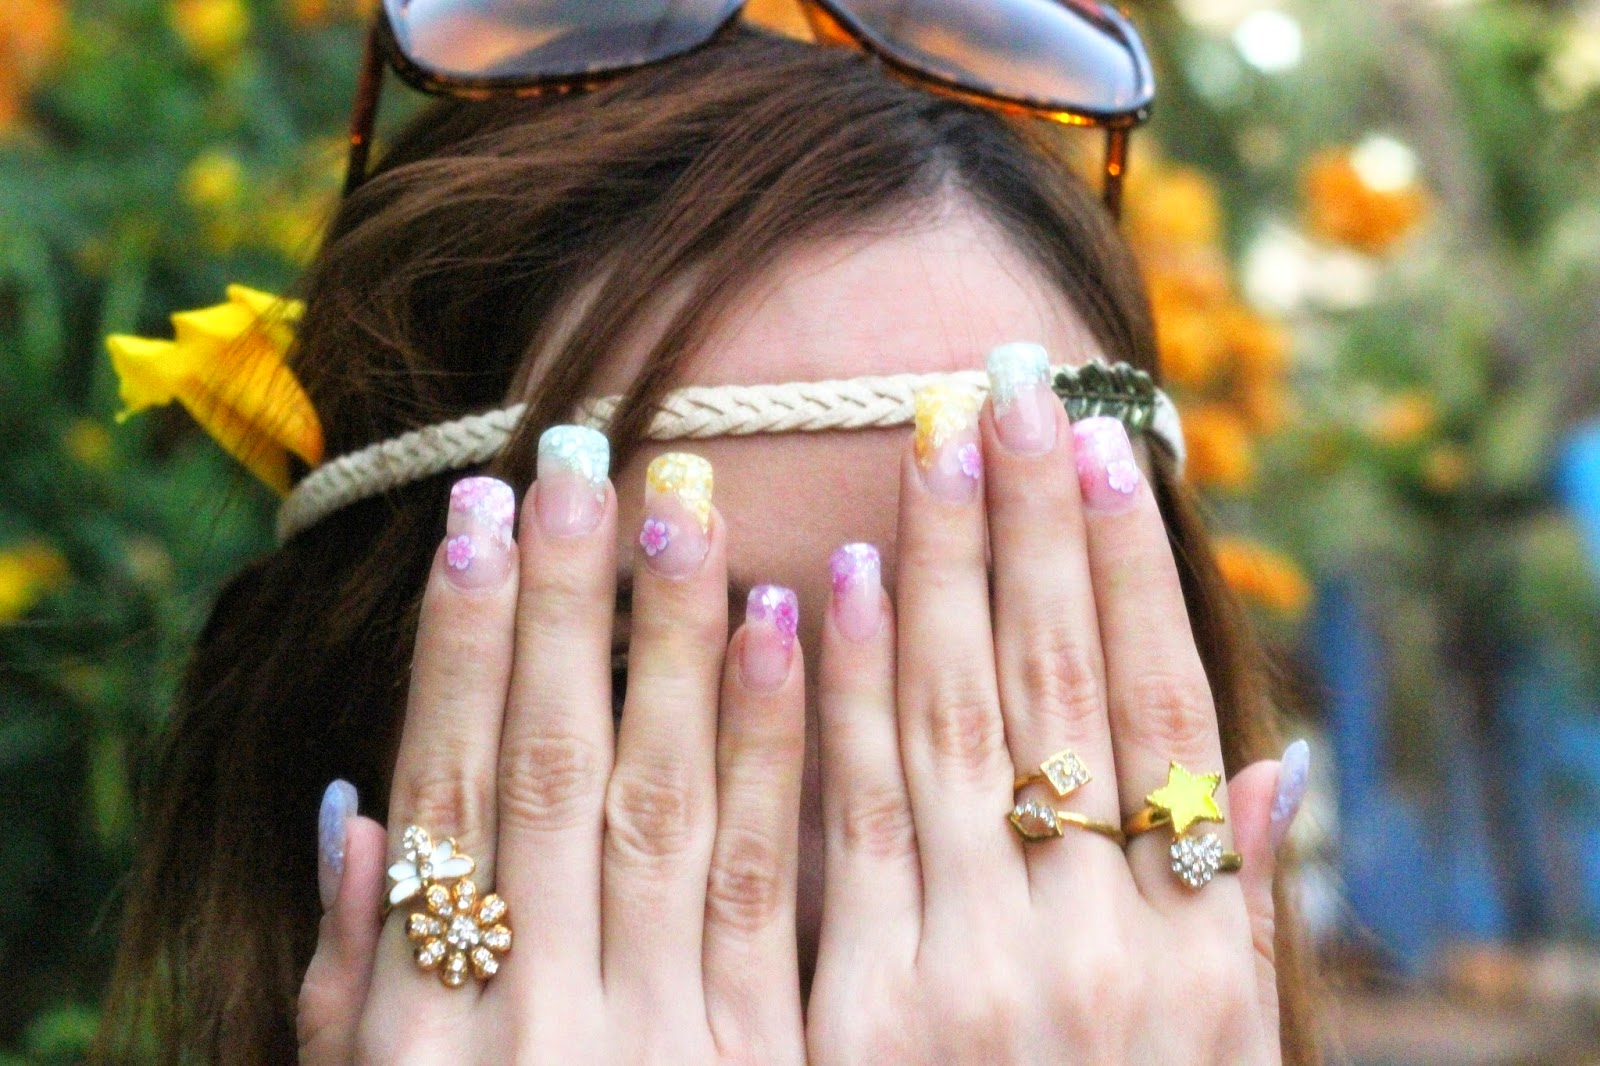 Multi-colour Manicure with charm rings